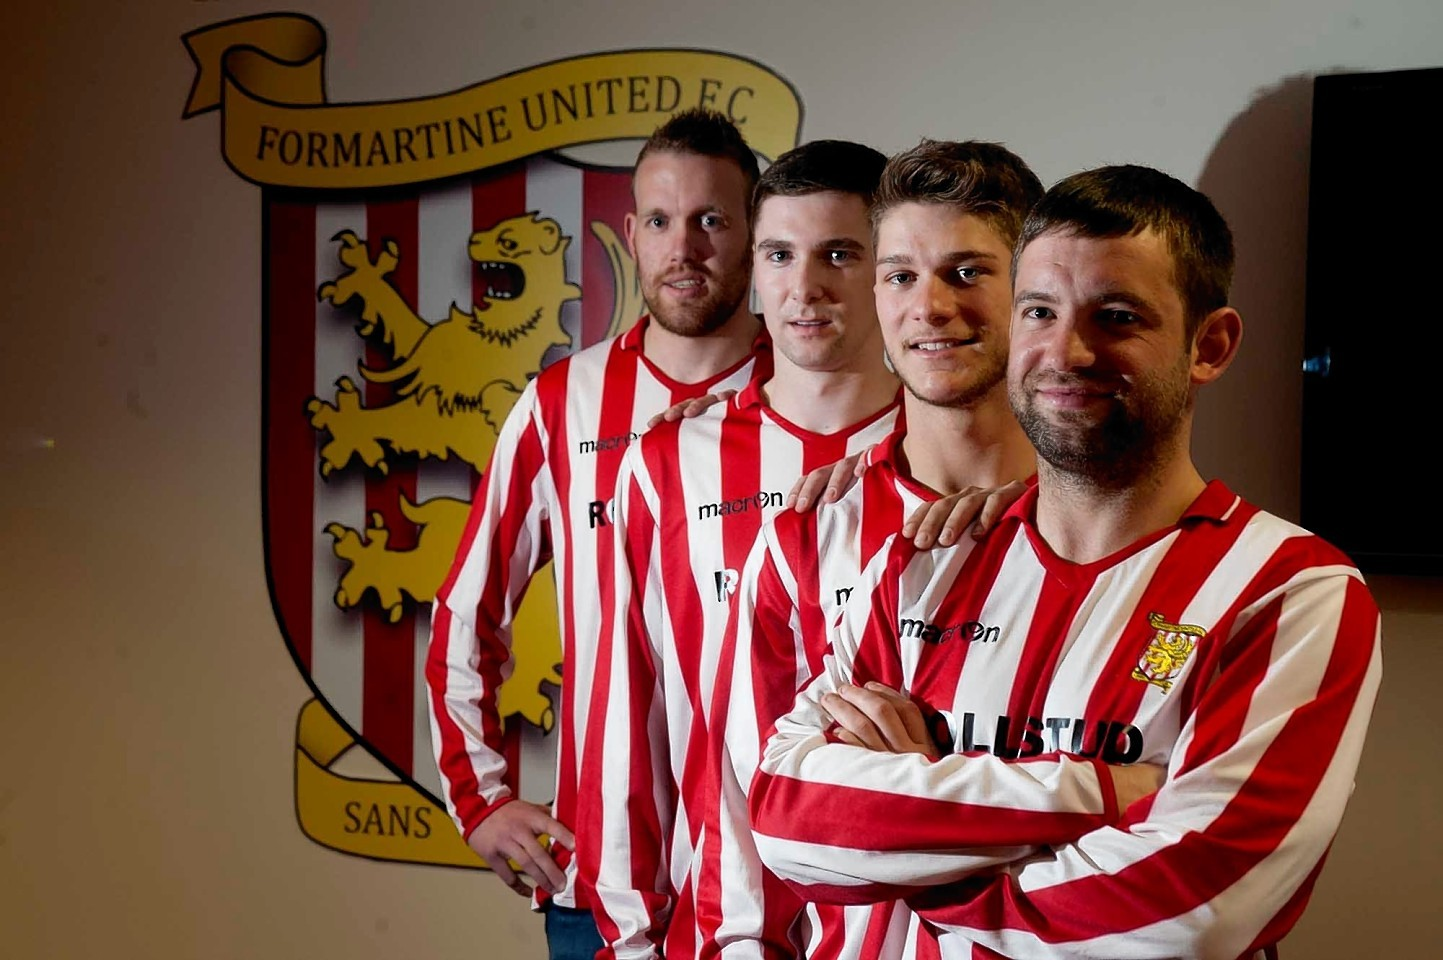 Formartine have made a number of signings over the summer